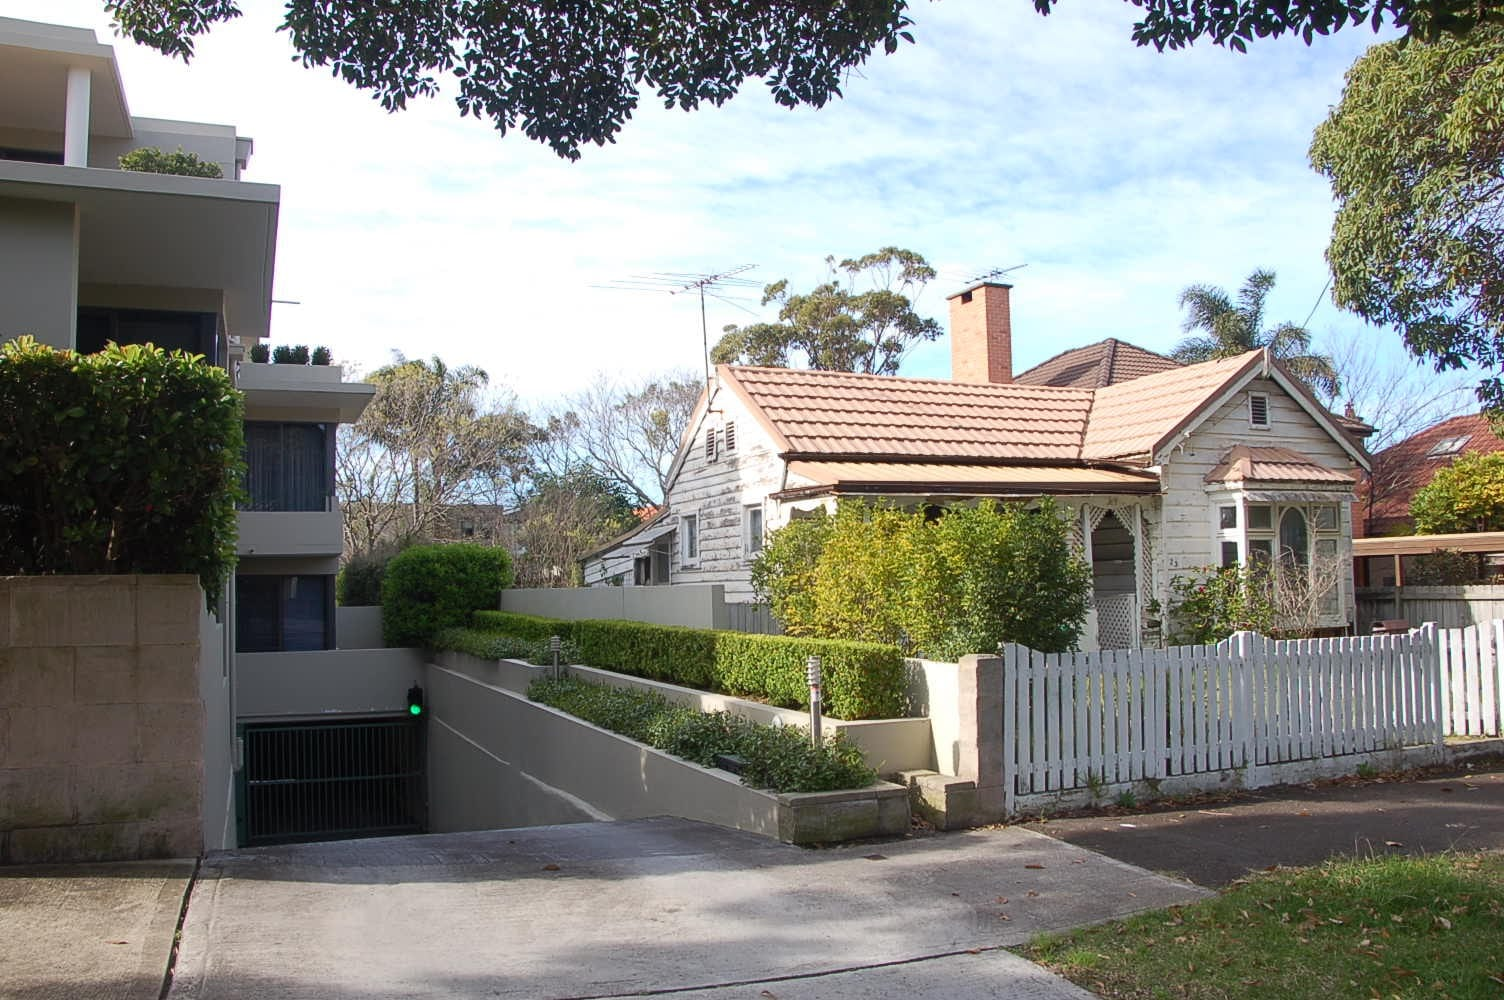 Figure 1. The heritage listed timber cottage before the conservation works (2014)